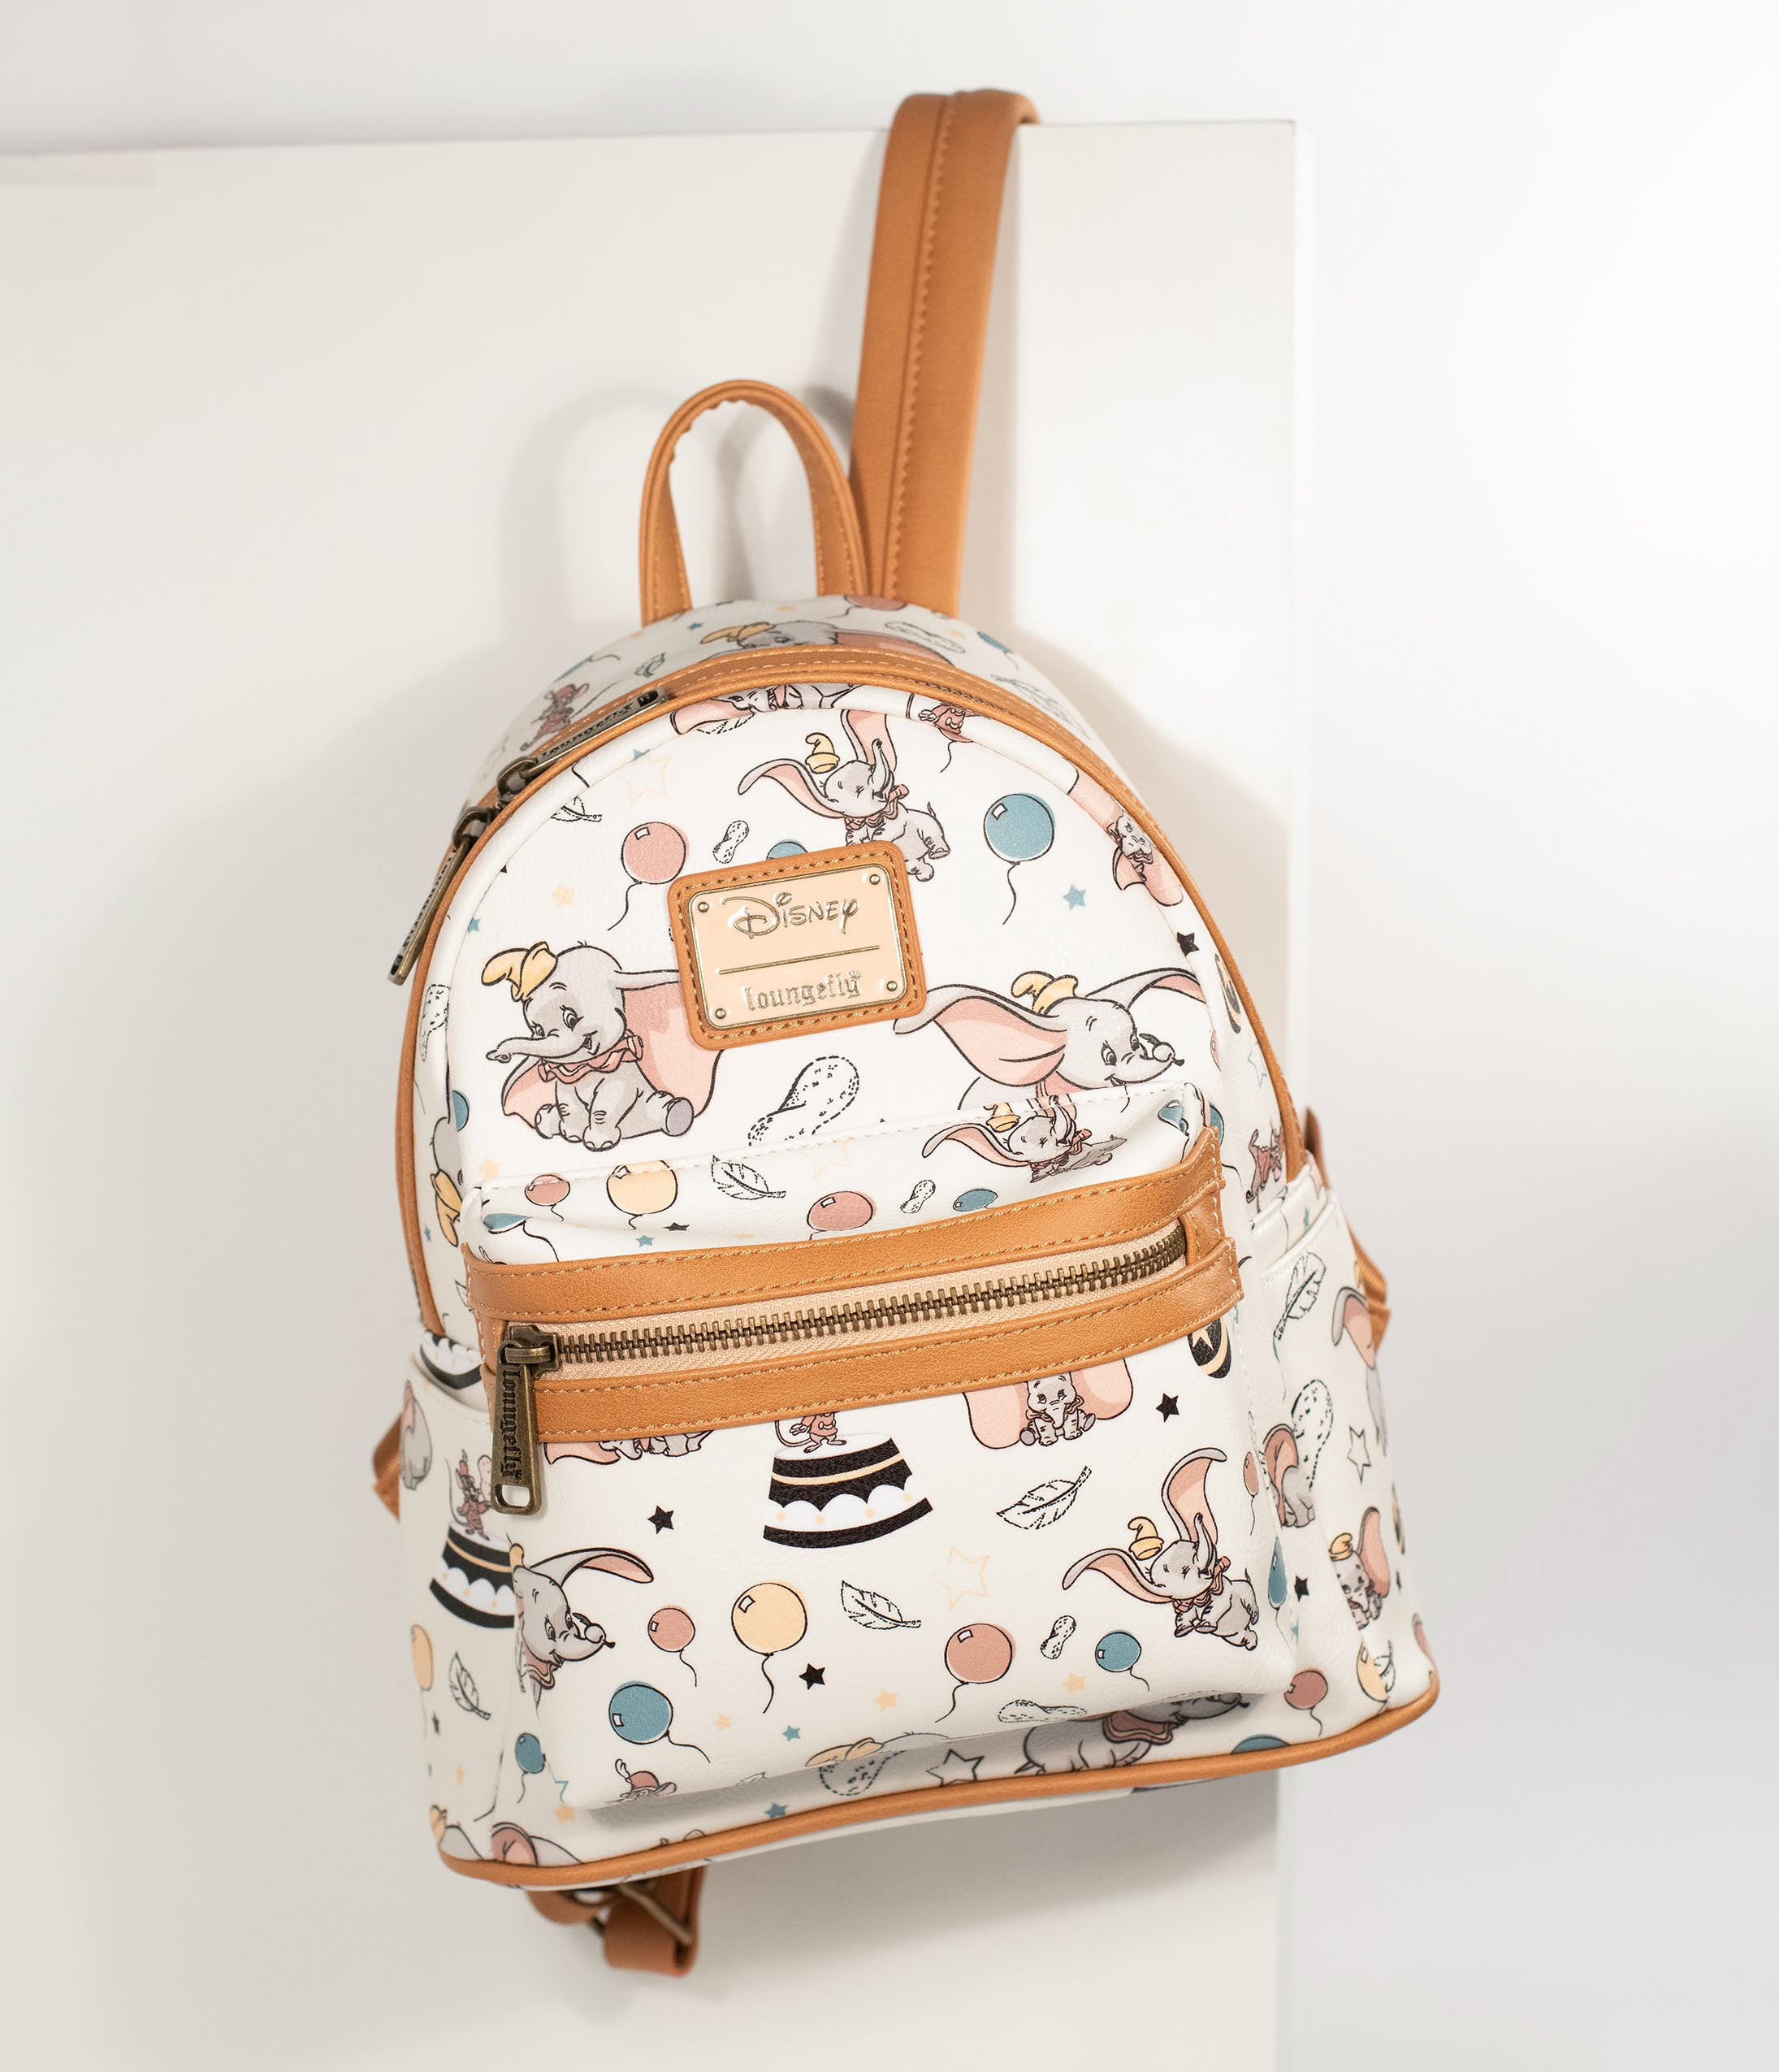 c903b68b9592c Loungefly Ivory Leatherette Dumbo Print Disney Mini Backpack